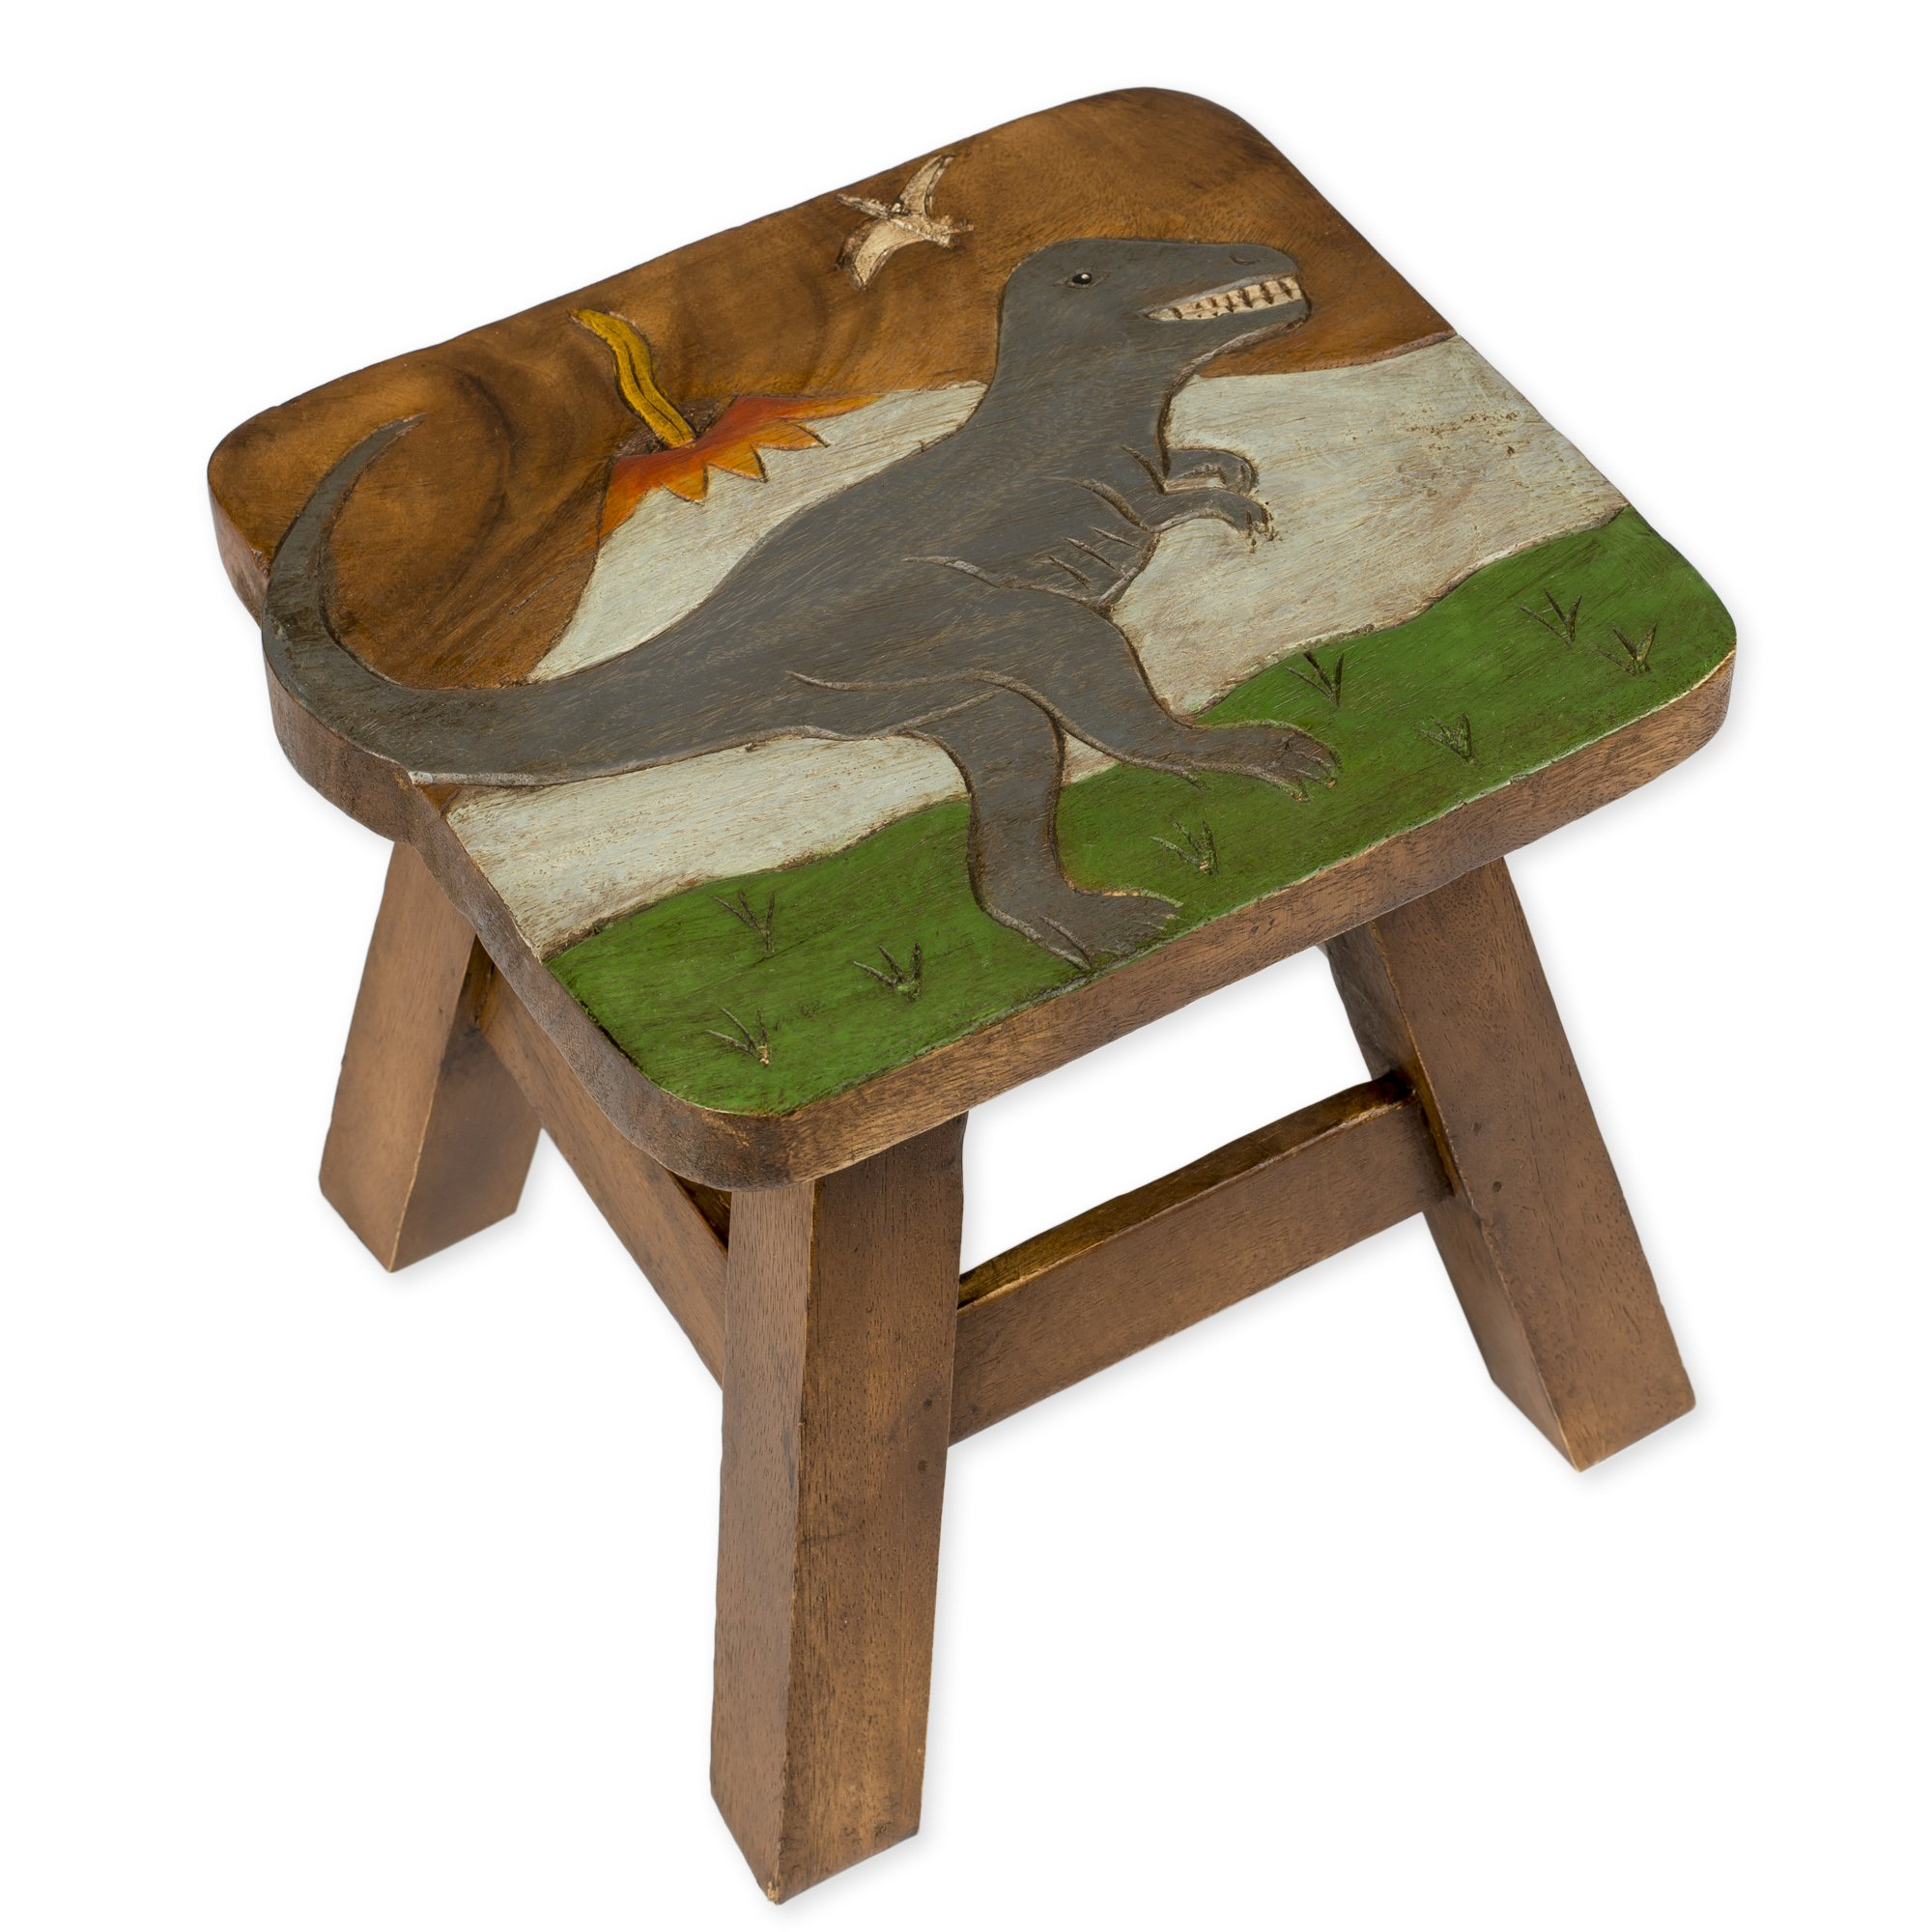 Tyrannosaurus Rex Dinosaur Design Hand Carved Acacia Hardwood Decorative Short Stool by Sea Island Imports (Image #1)